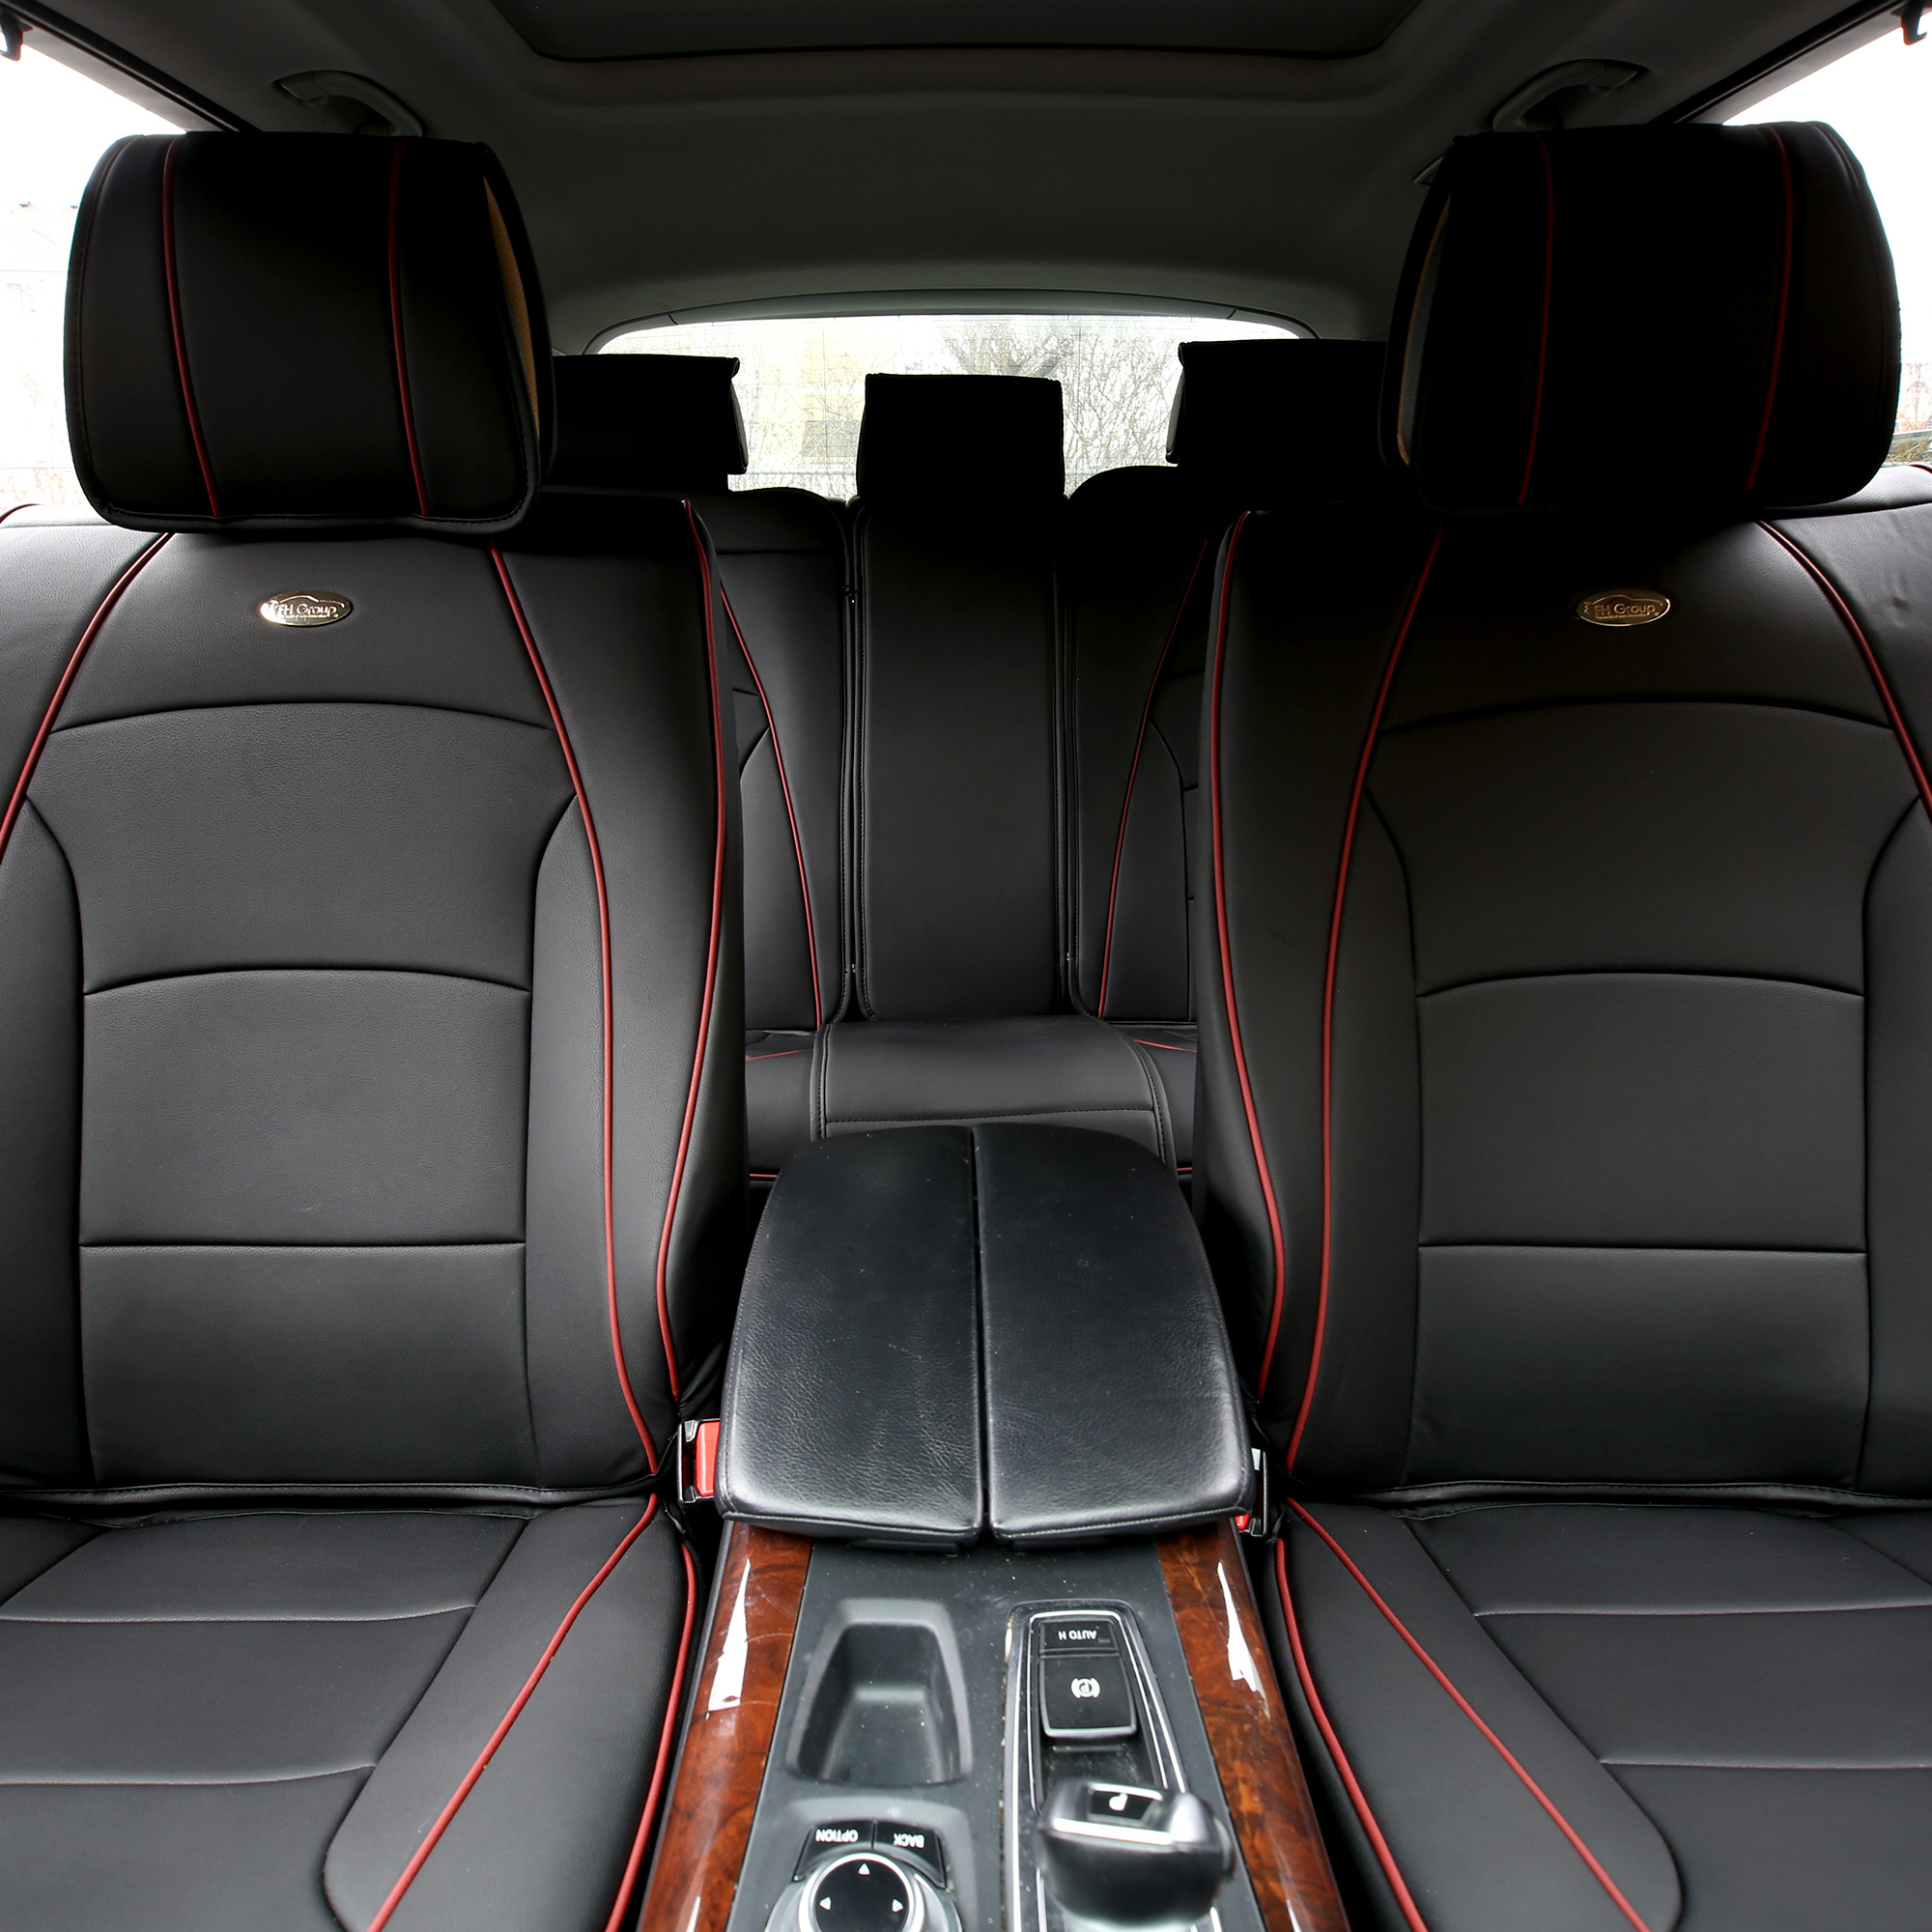 car suv truck pu leather seat cushion covers black 220511115004 ebay. Black Bedroom Furniture Sets. Home Design Ideas